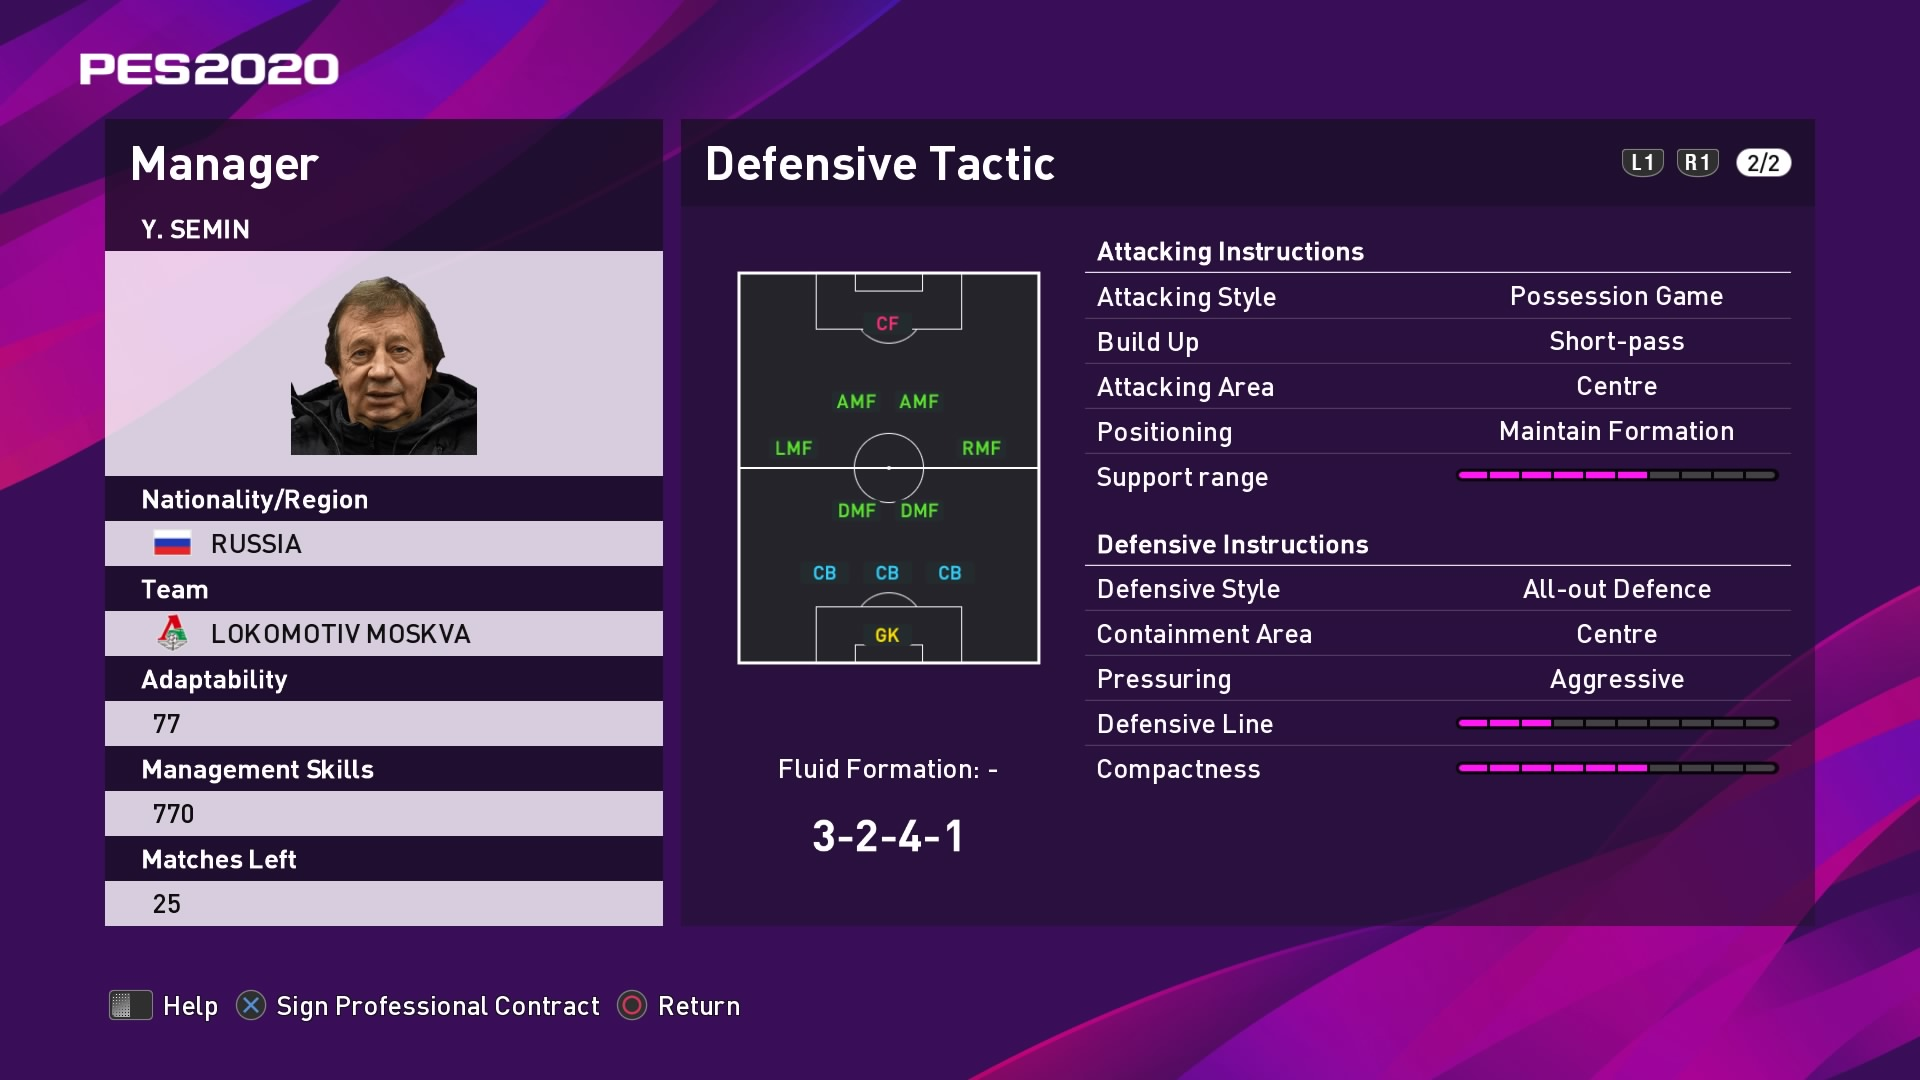 Y. Semin (Yuri Semin) Defensive Tactic in PES 2020 myClub